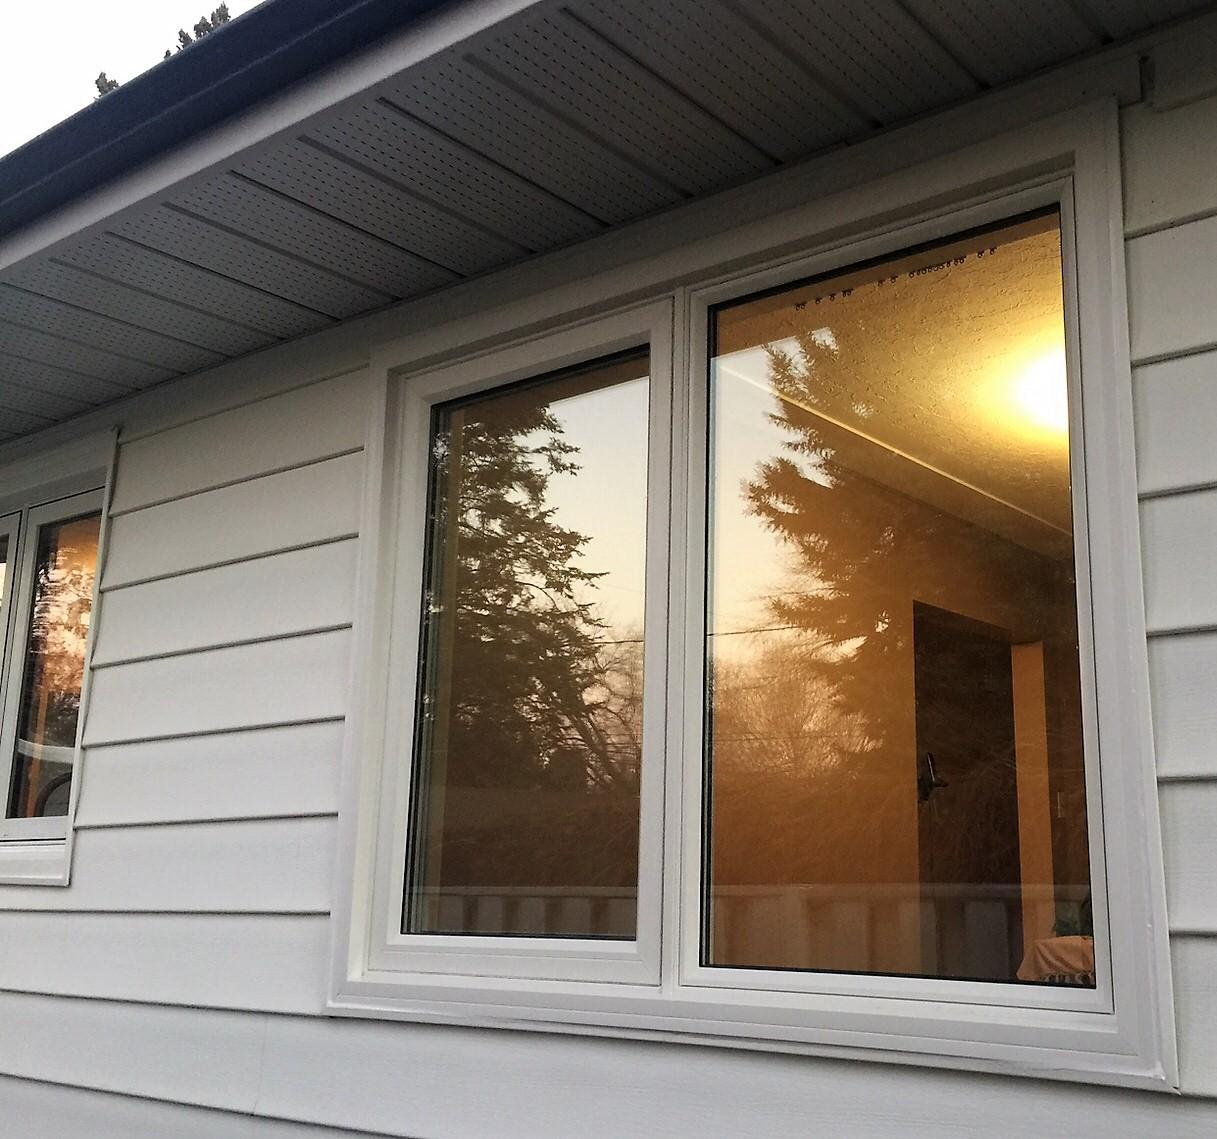 Best Windows For Your Bedroom Calgary Windows Doors: Best Material For Awning Windows